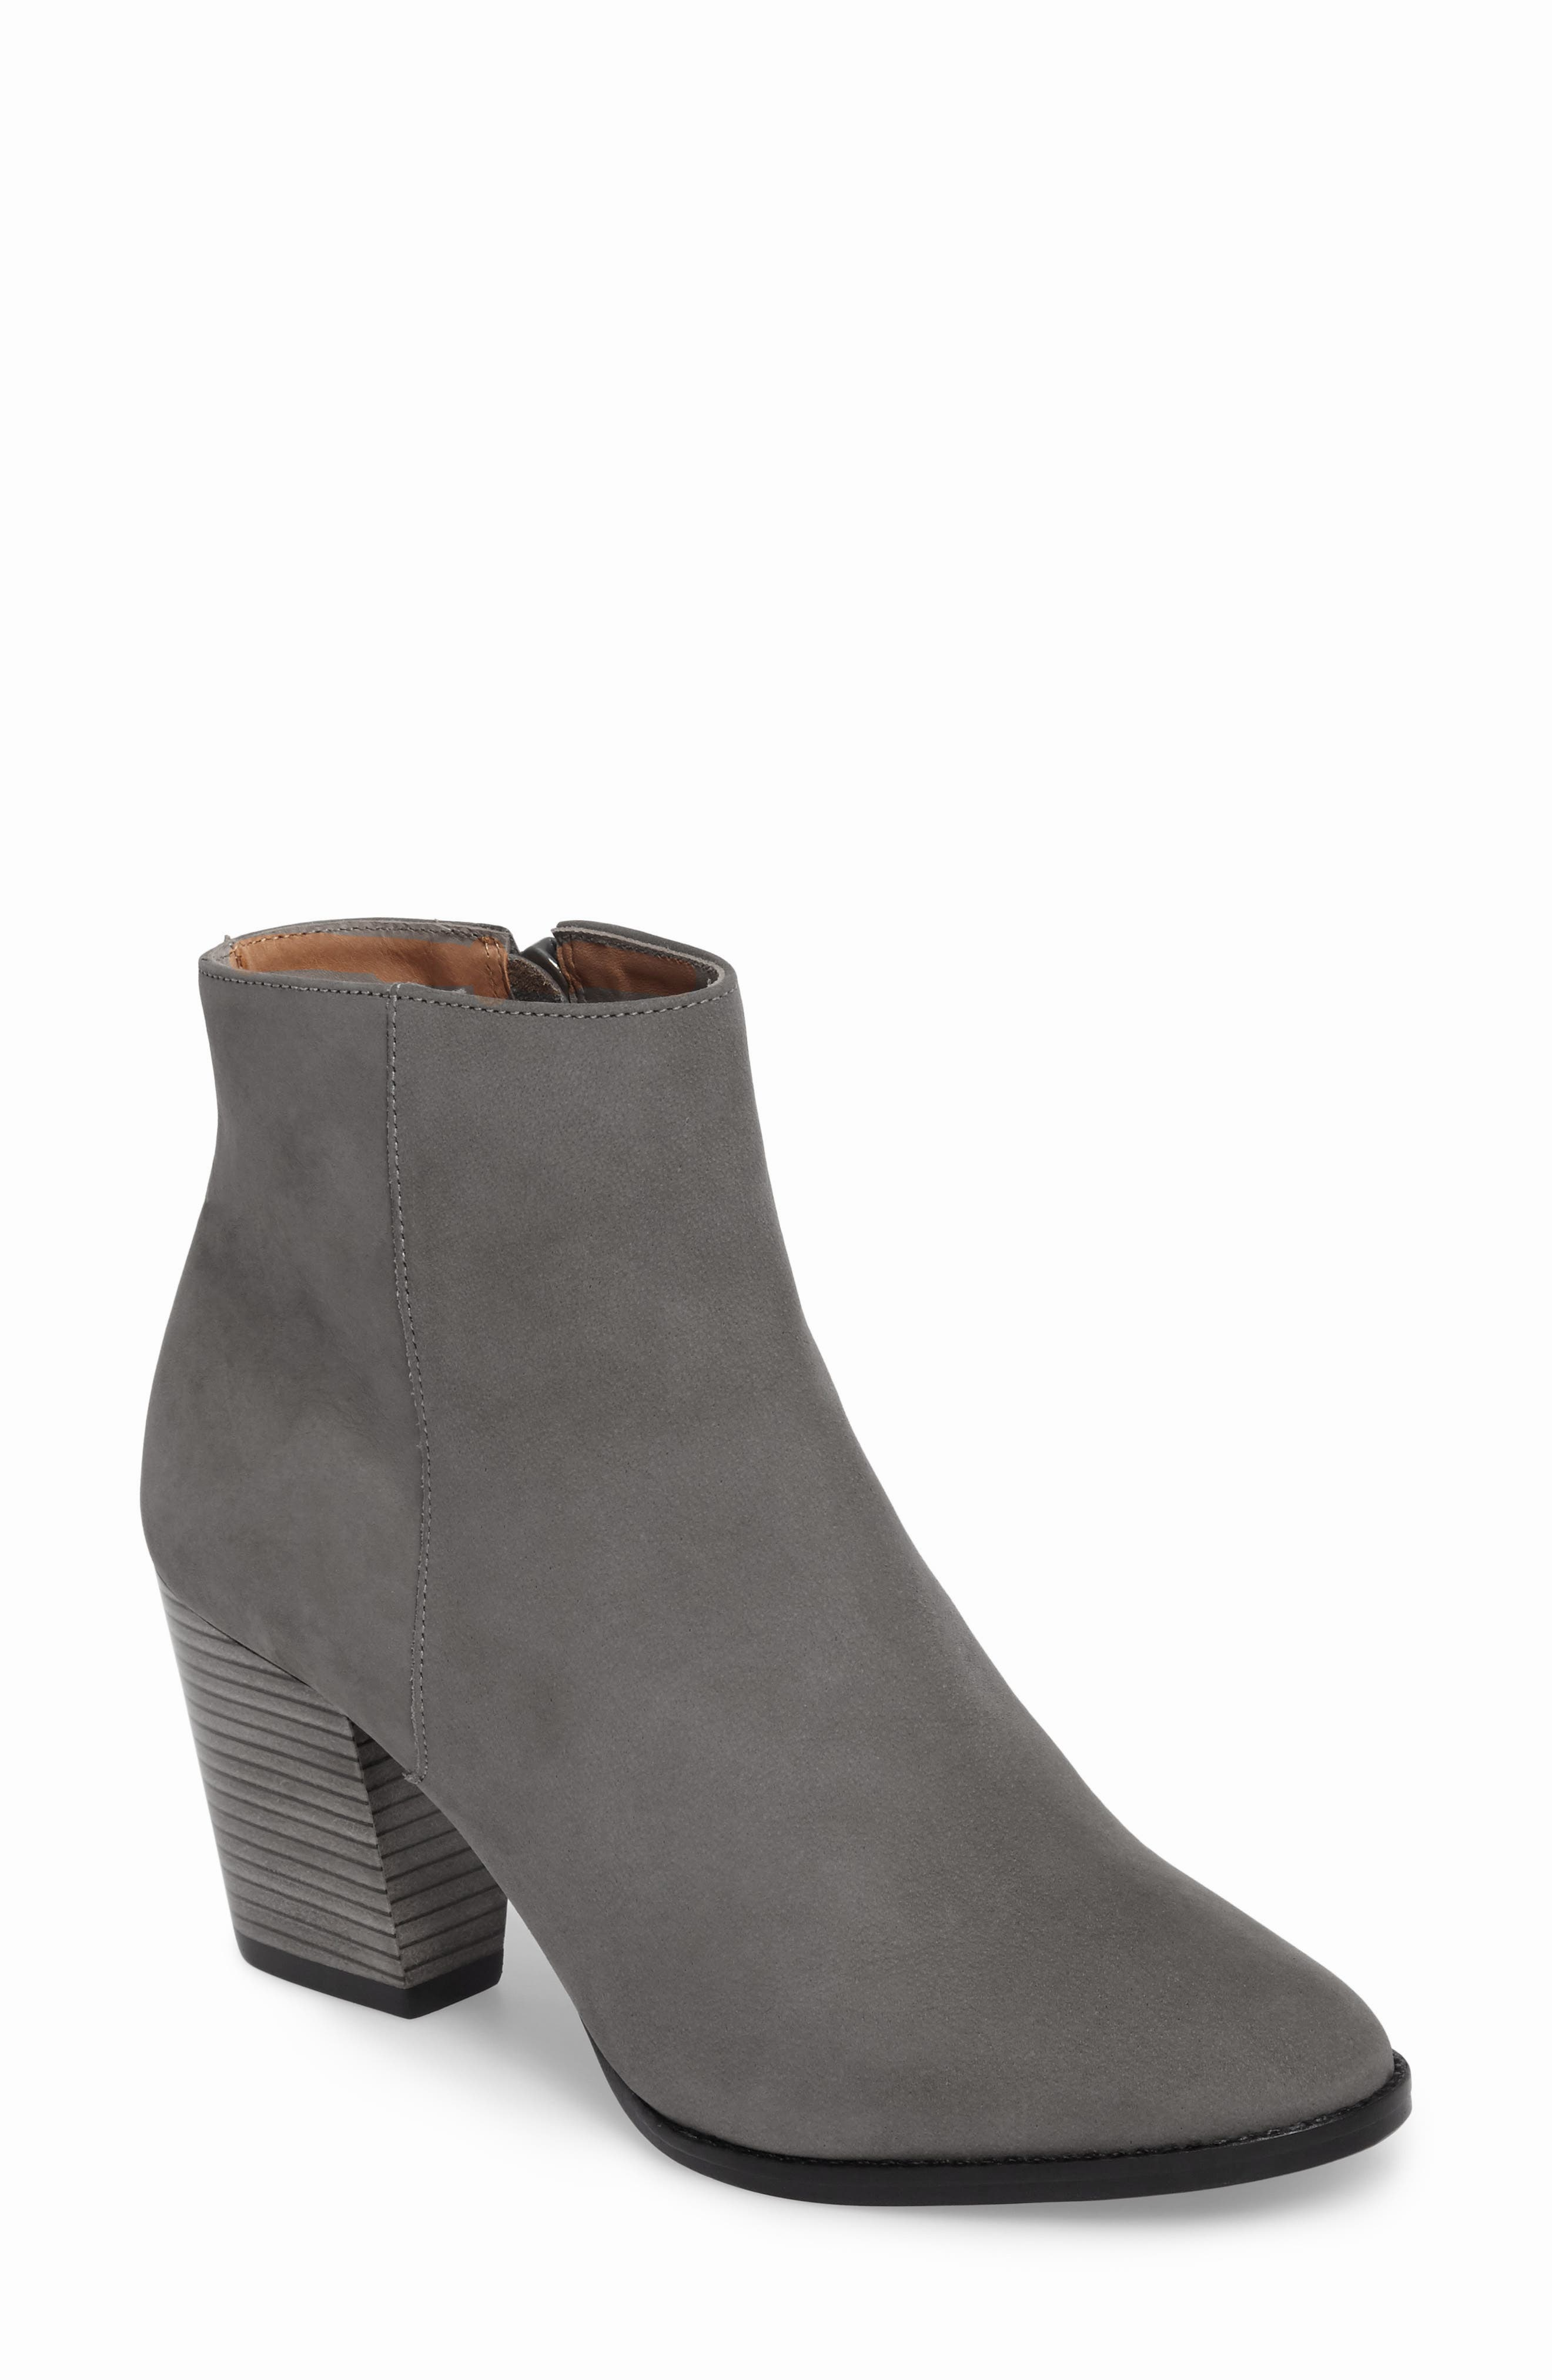 Klub Nico Women's Bellerie Tapered Heel Bootie NqXqlhynoW